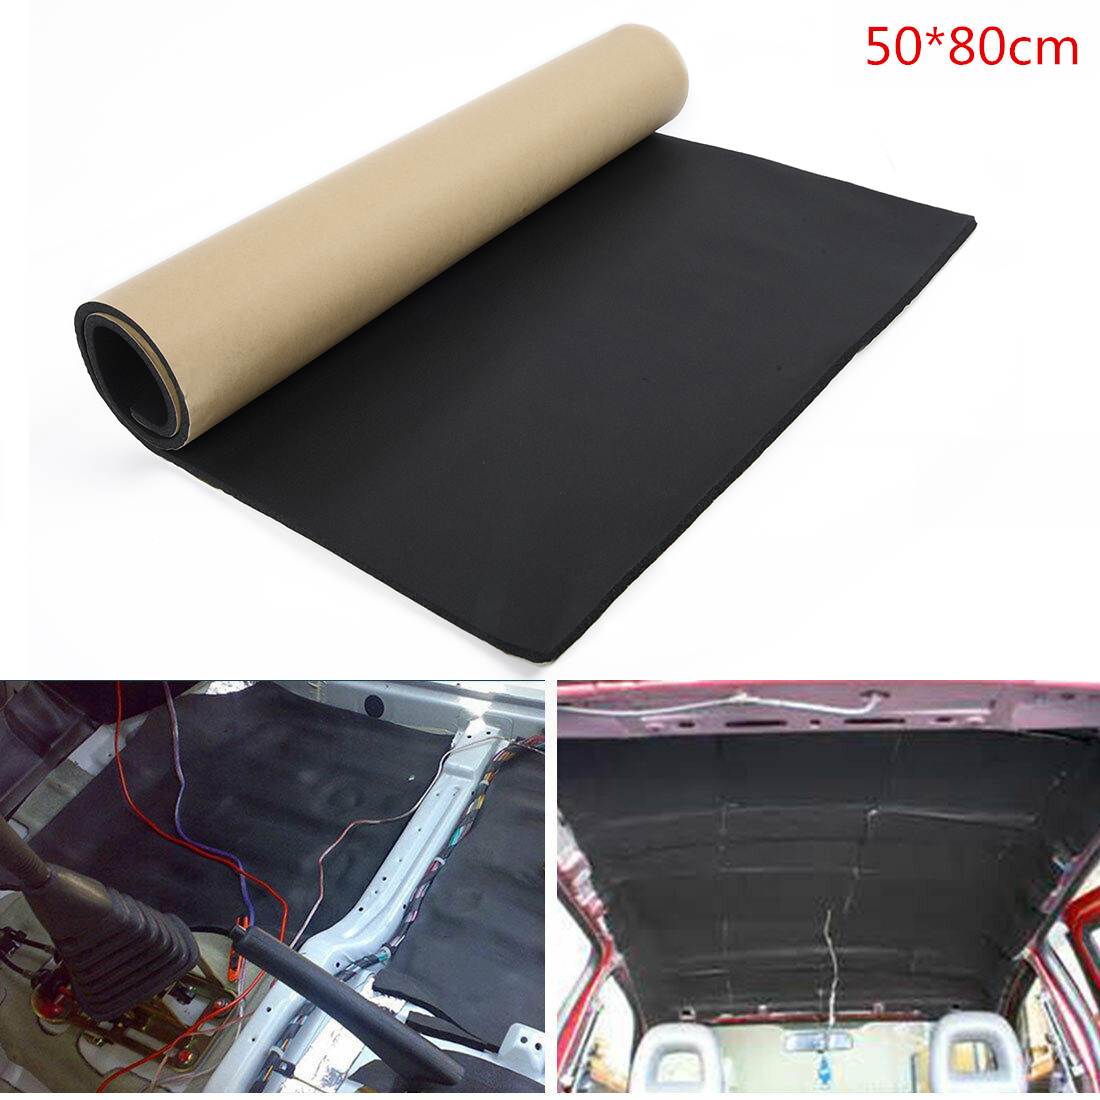 6mm Car Audio Stereo Noise Insulation Sound-proof Dampening Pad Mat 50*80cm Pad Woofer Noise Insulation Soundproof